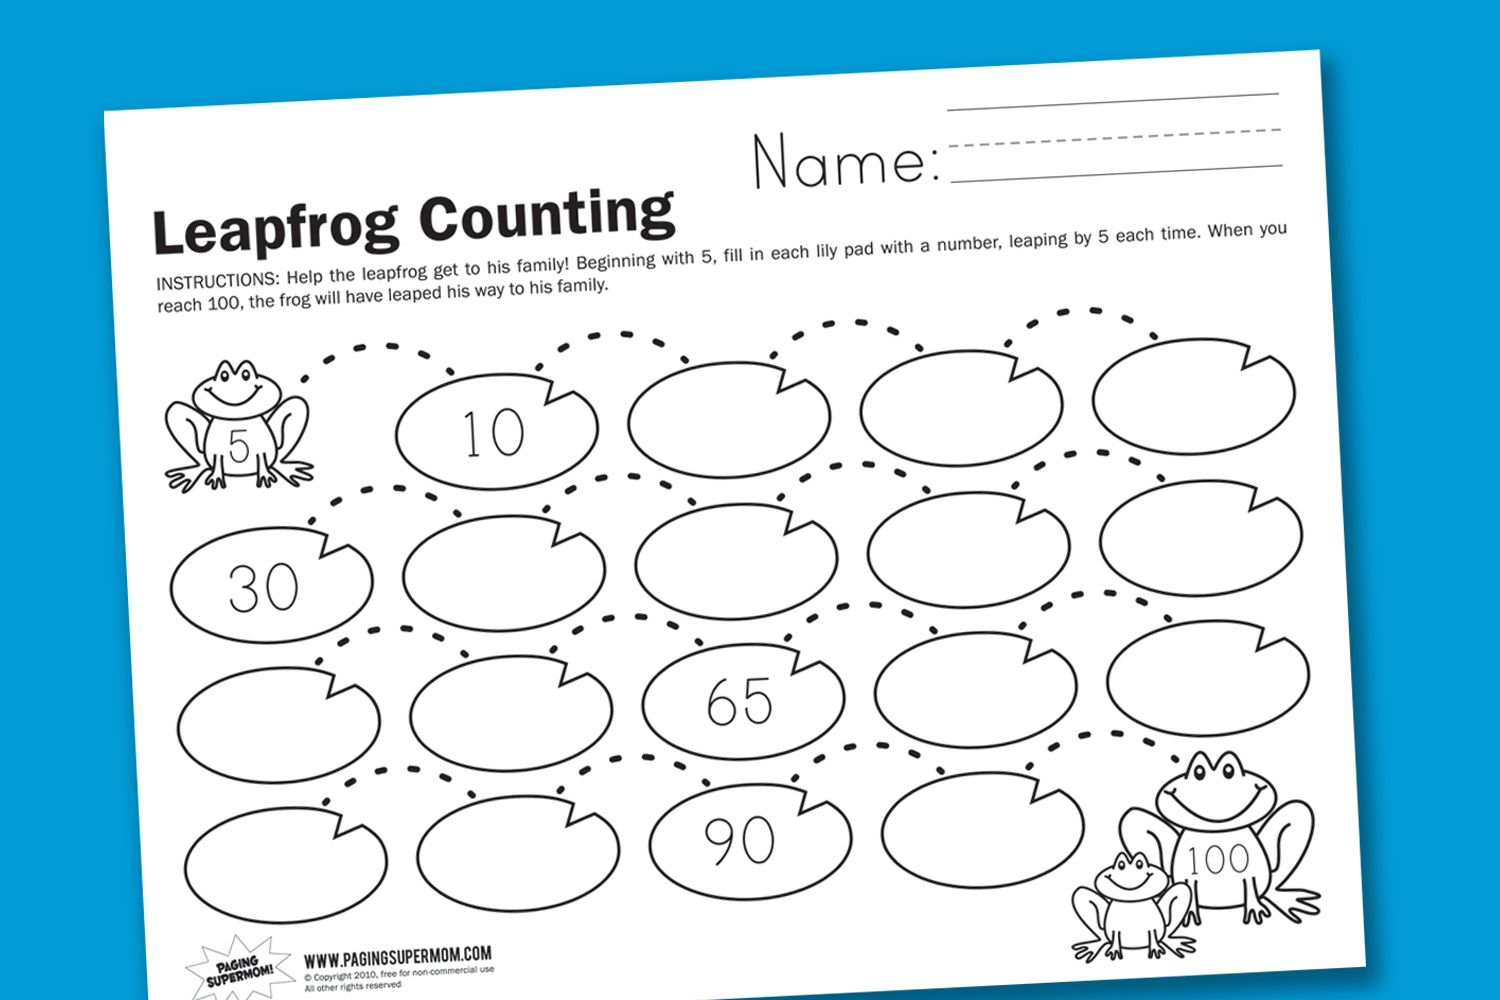 worksheet Skip Counting By 10 Worksheets leapfrog counting supermom math and worksheets in honor of leap day weve made a worksheet for worksheet